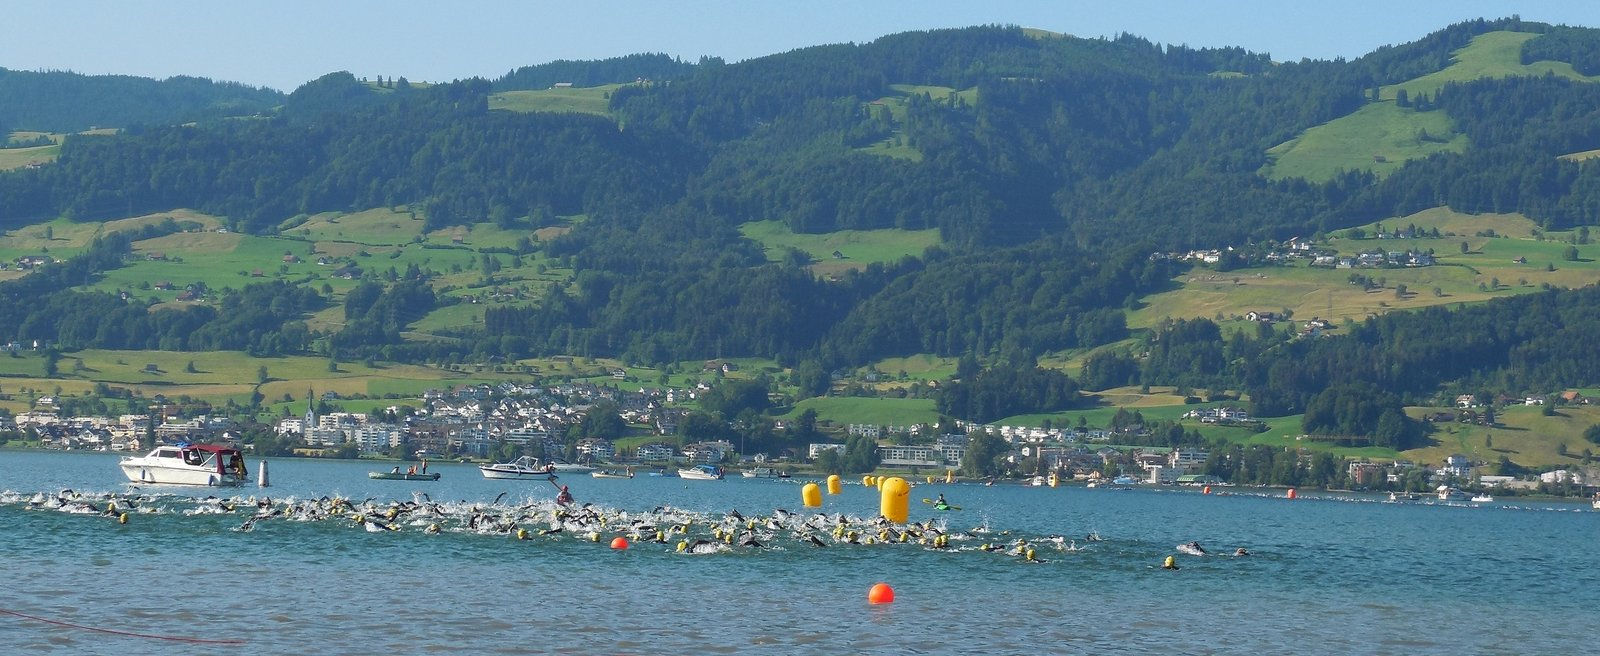 150611_Rapperswil_Schad_1